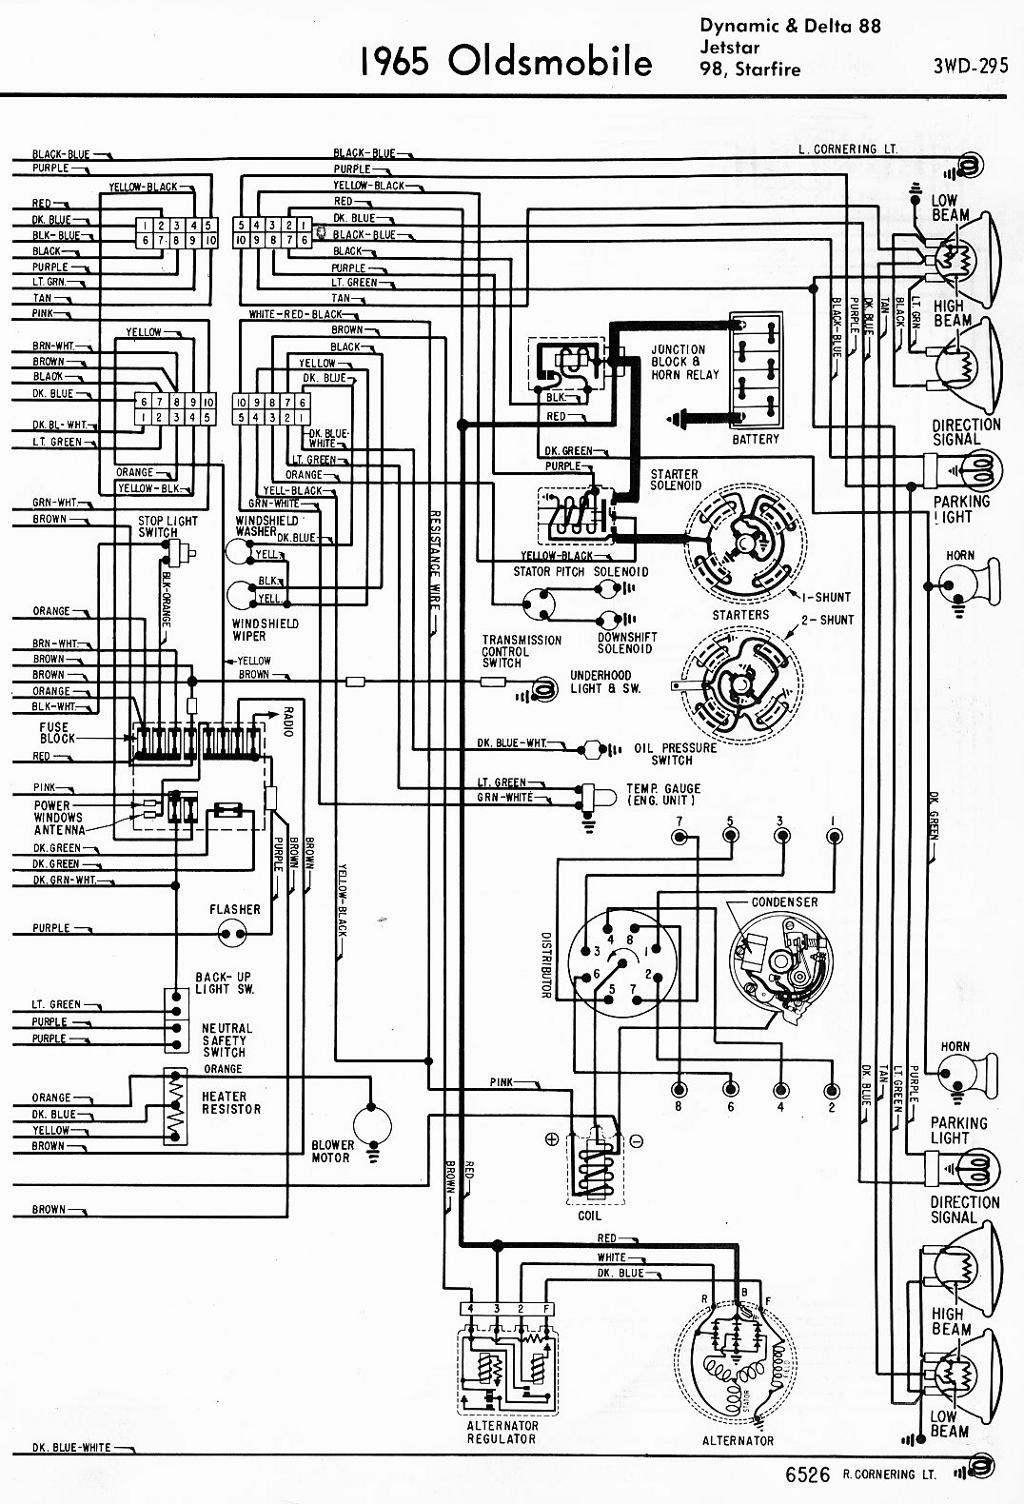 Outstanding Oldsmobile Radio Wiring Diagram Images Best Image Wire